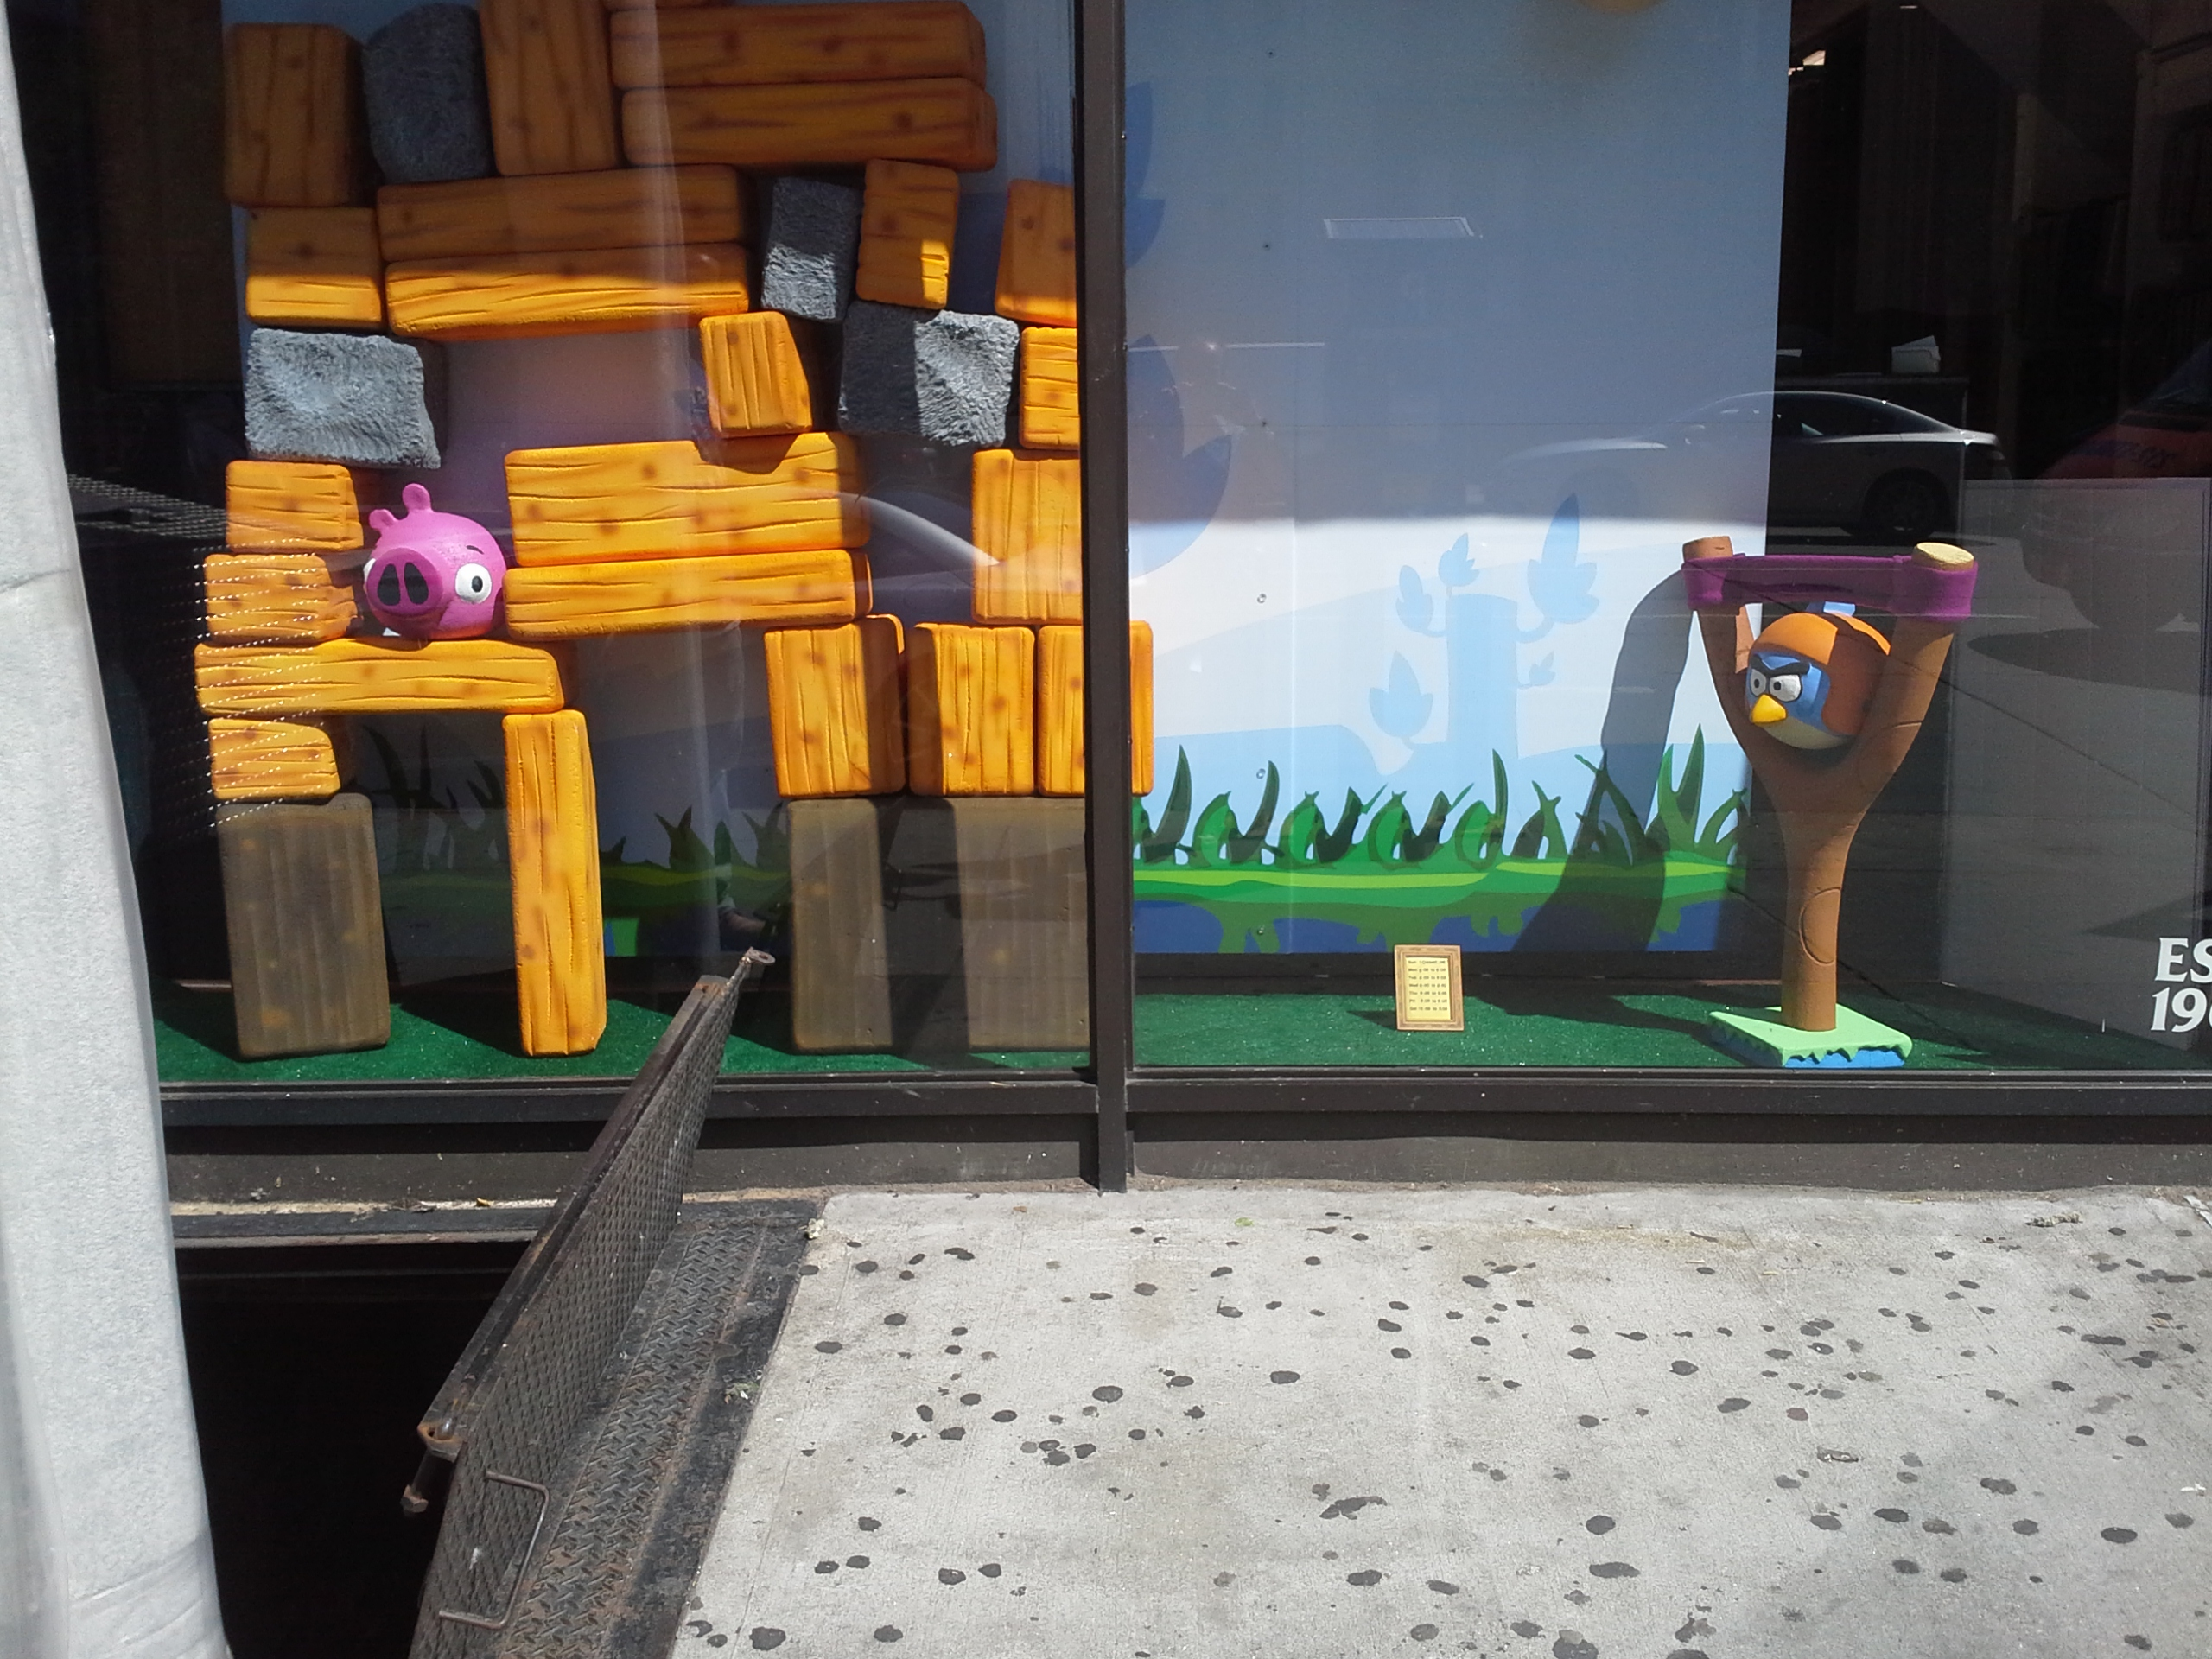 Custom Retail Point of Sale Window Foam Sculptured and Cardboard Display Angry Bird Theme